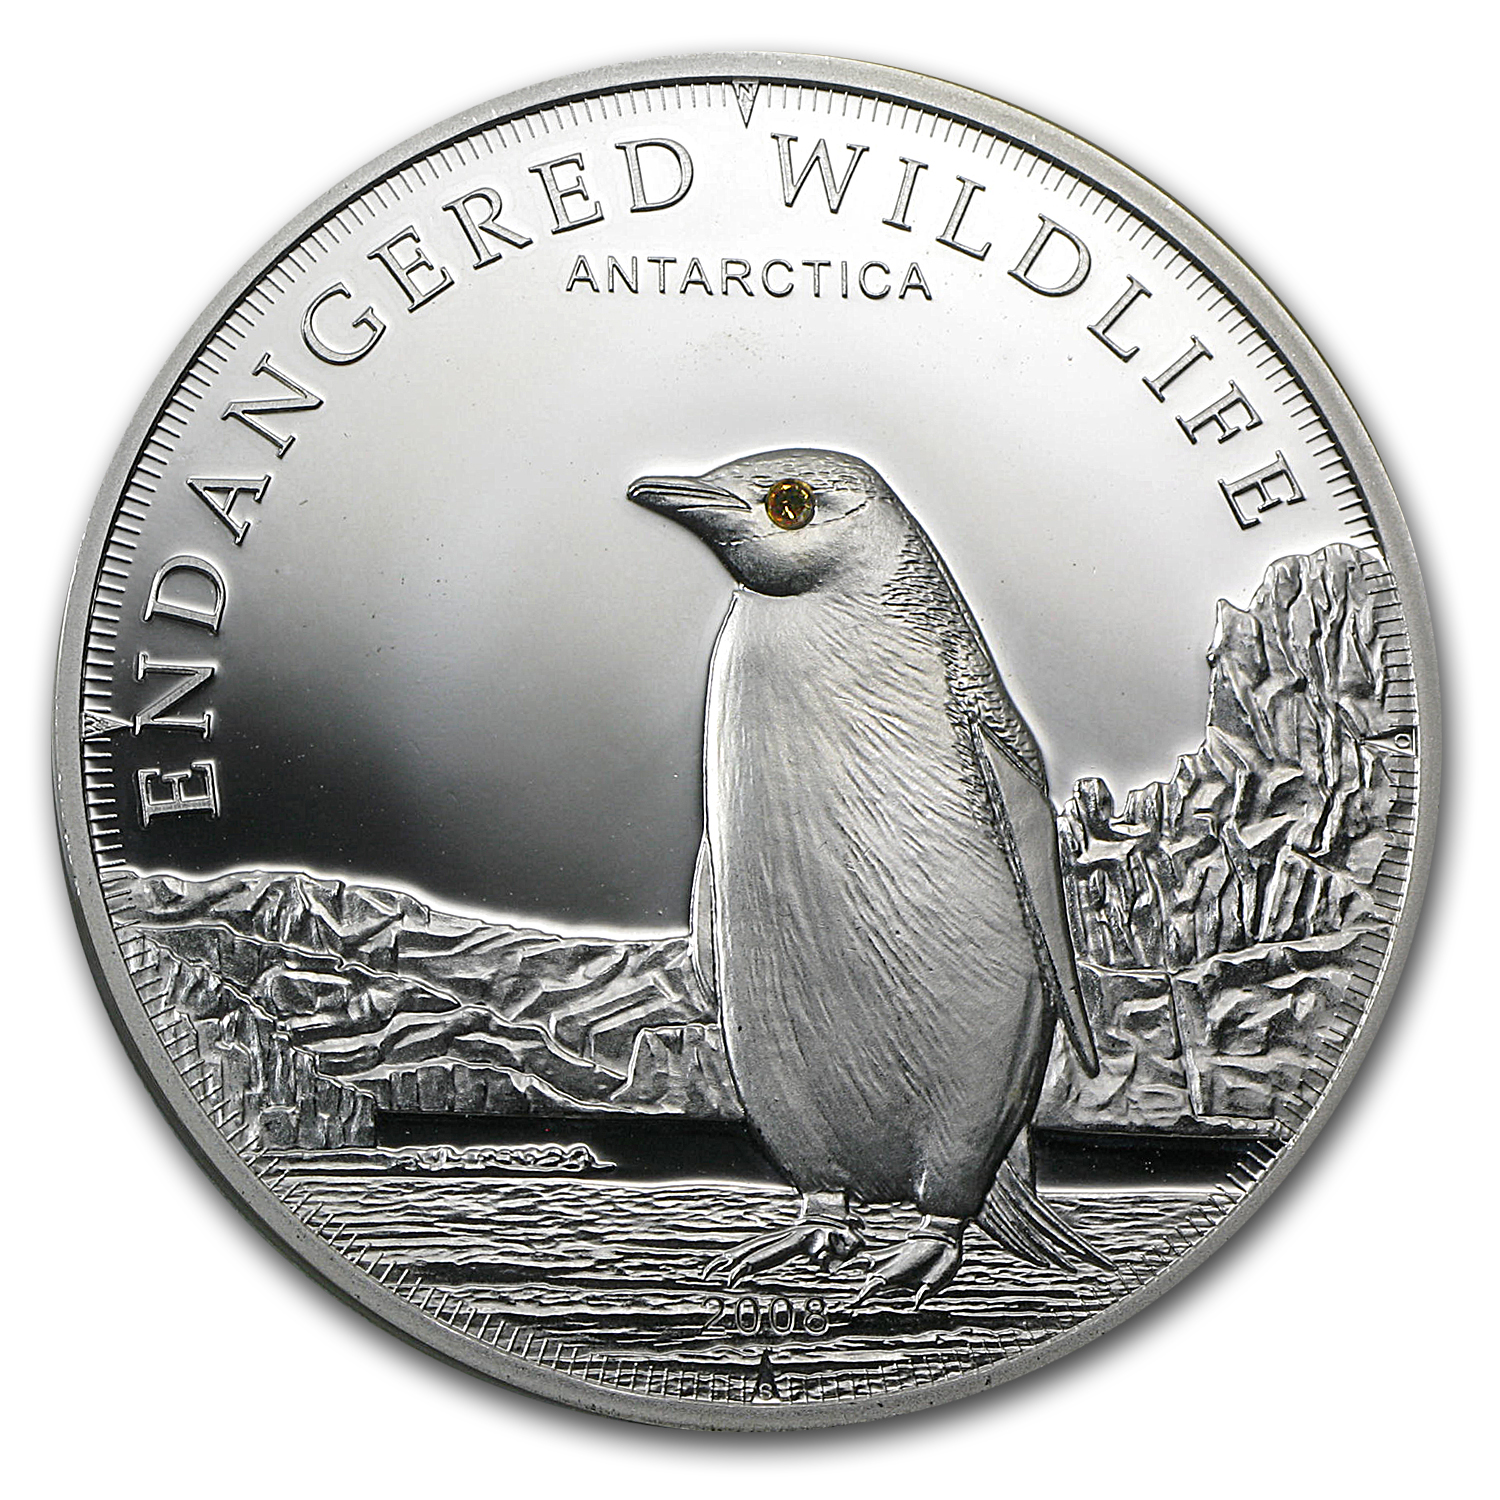 2008 Cook Islands Proof Silver $5 Endangered Wildlife Penguin